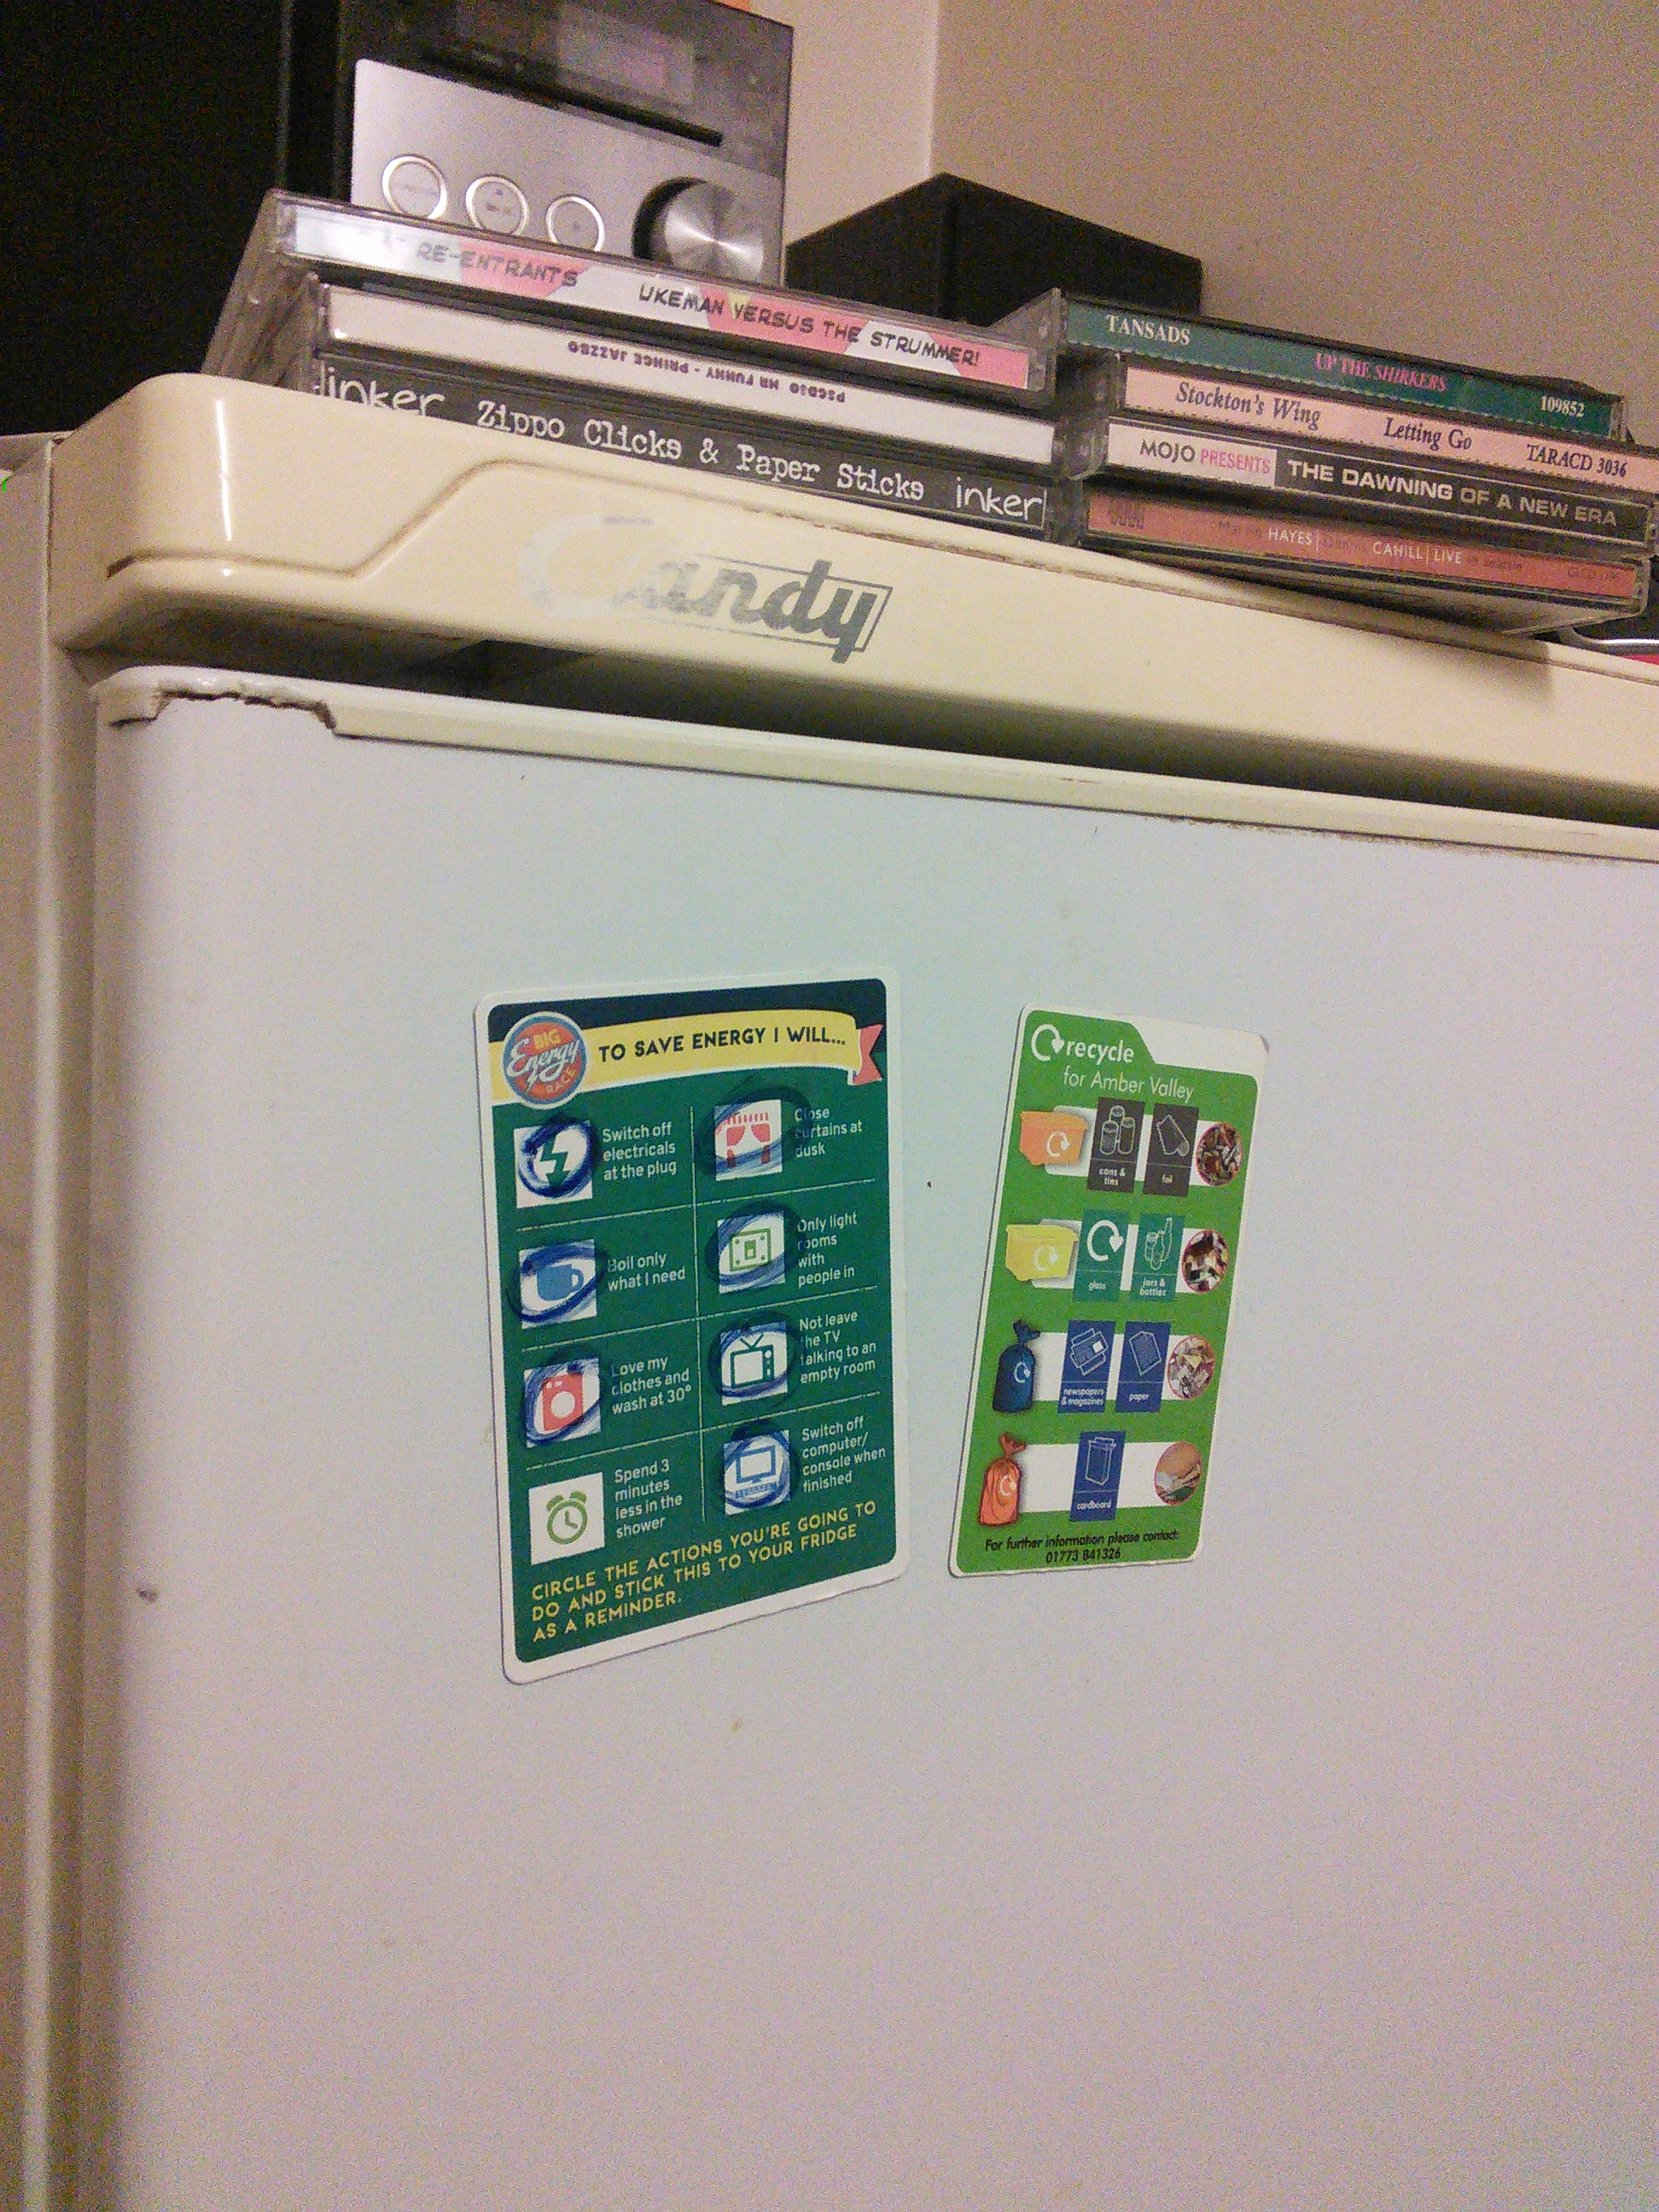 Fridge Magnet in situ